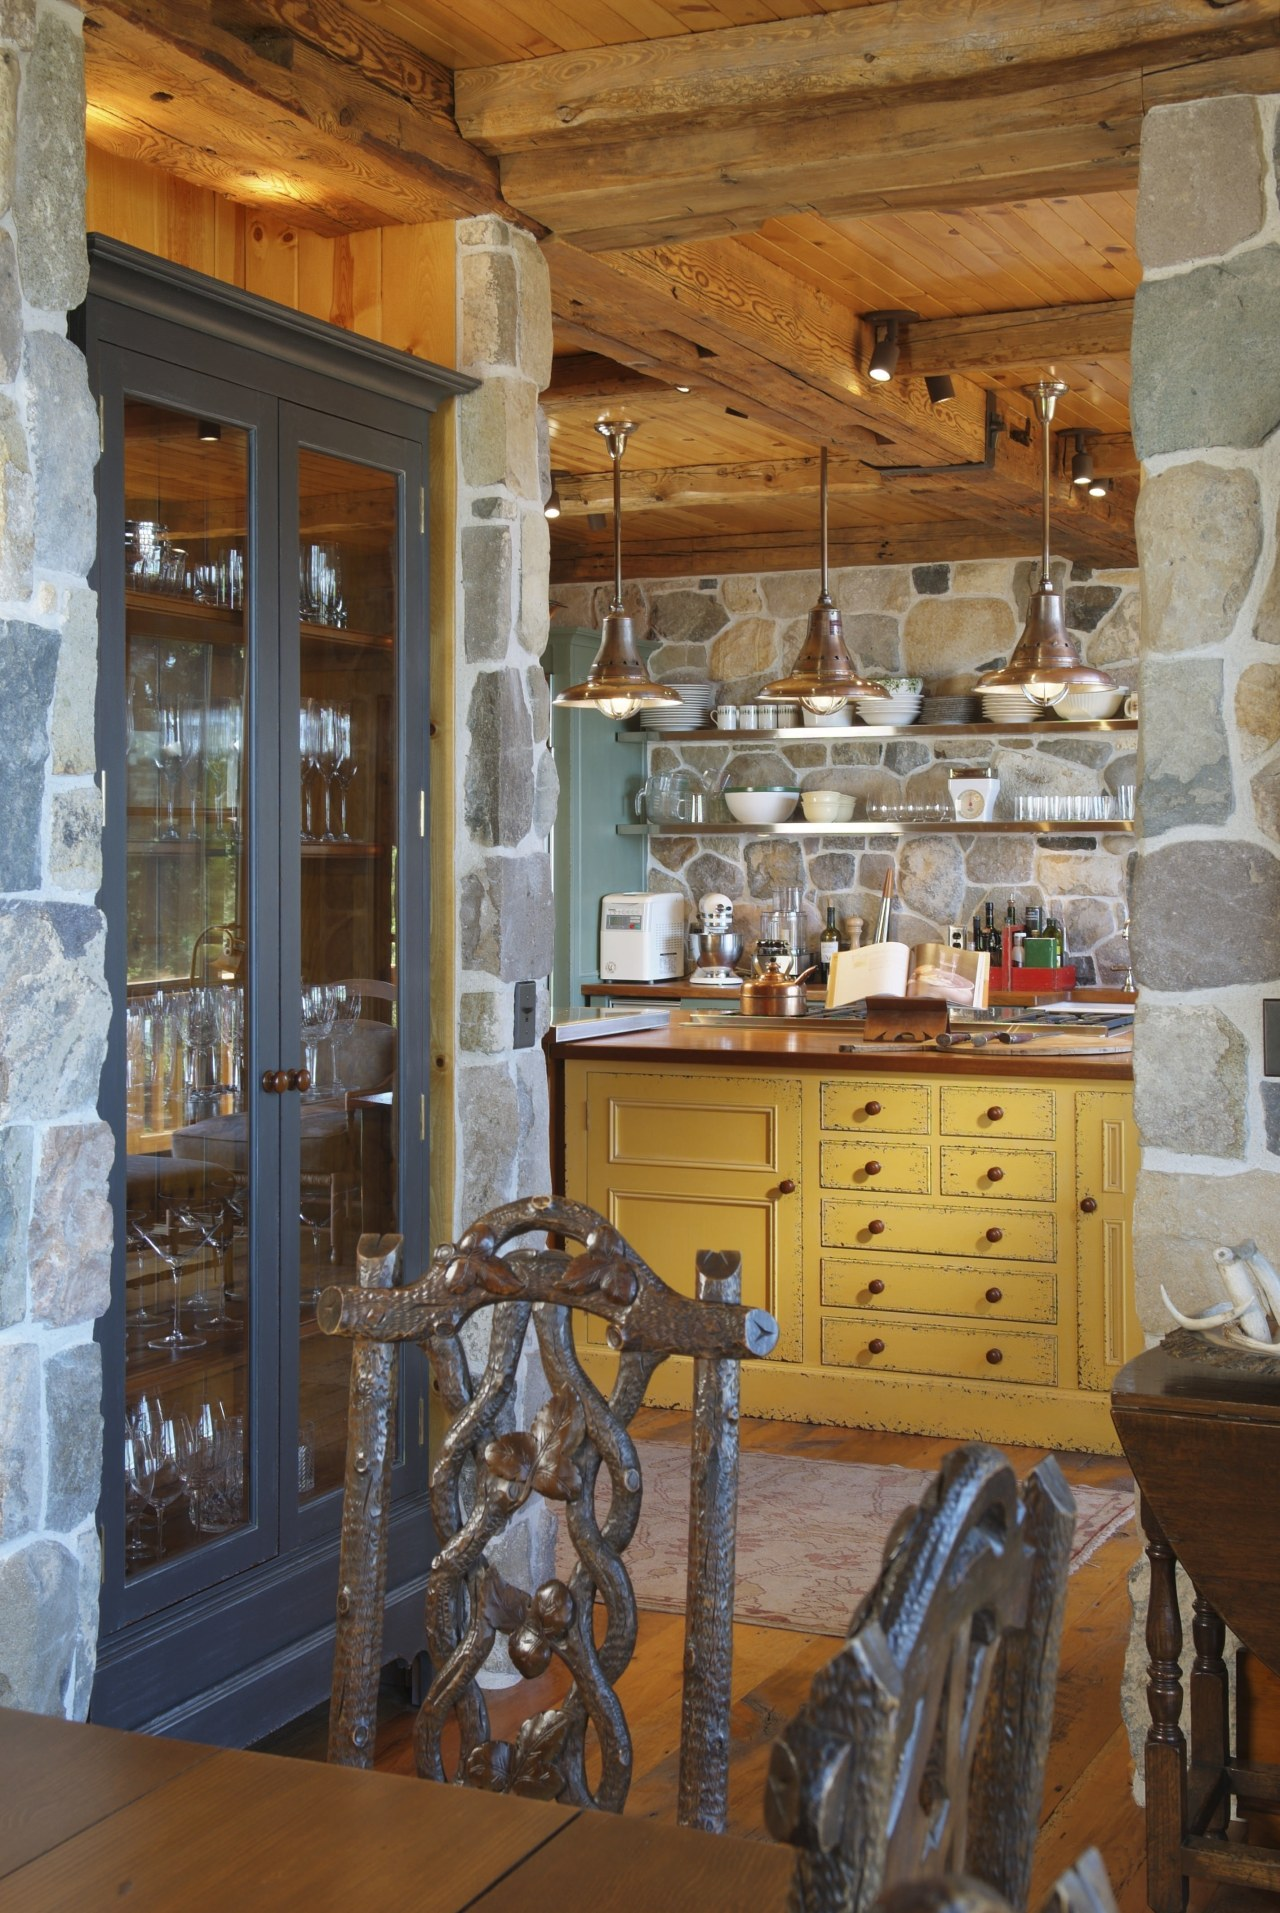 View of an old-styled kitchen which features a cabinetry, furniture, home, interior design, kitchen, room, wood, brown